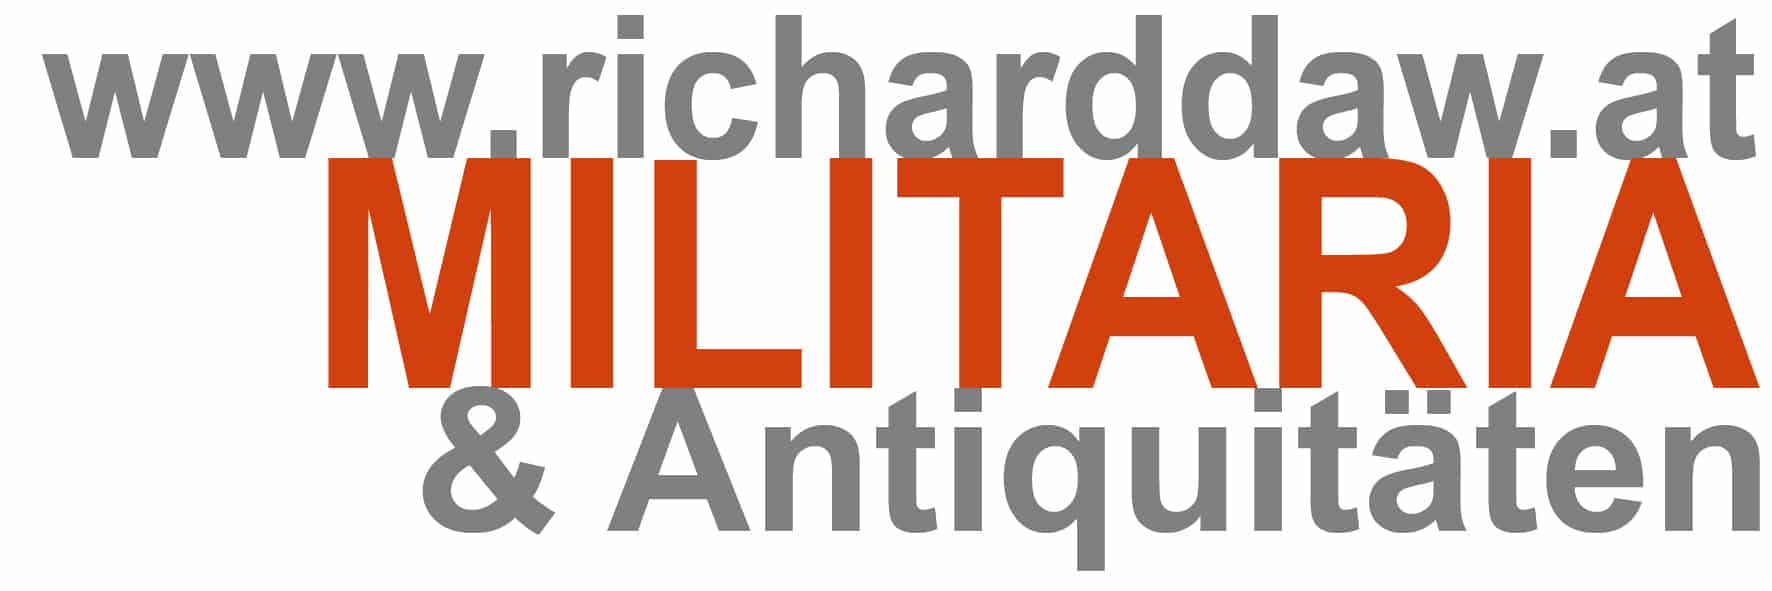 Richard Dawkins MILITARIA & Antiquitäten